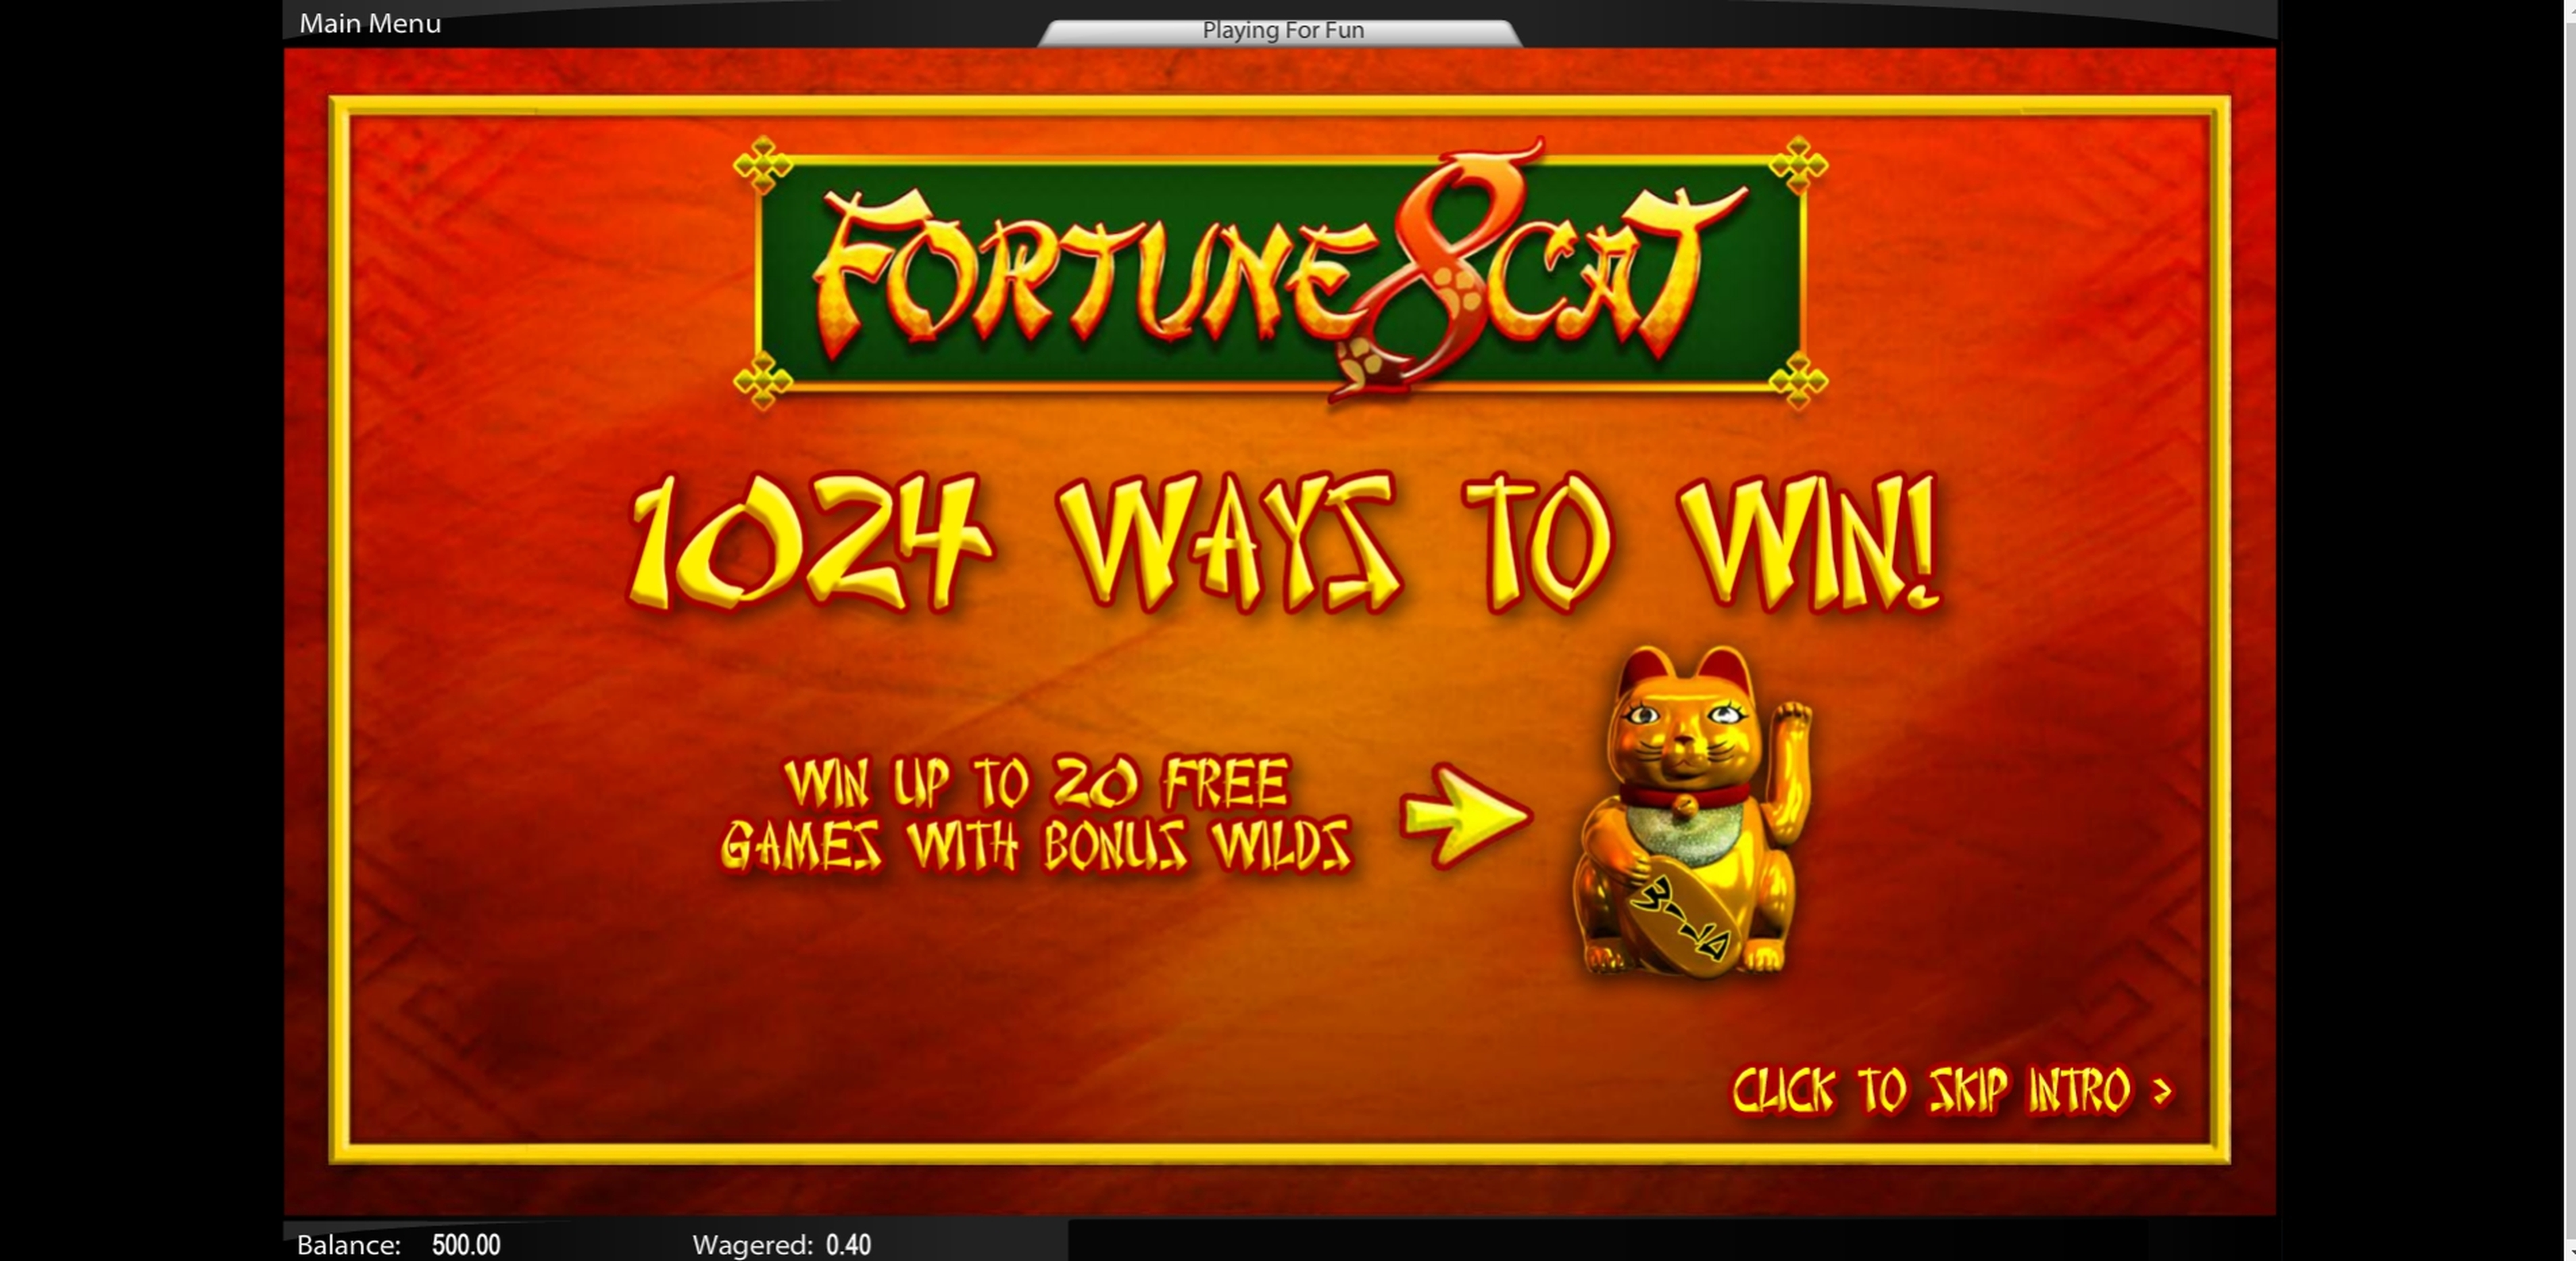 Play Fortuna 8 Cat Free Casino Slot Game by Top Trend Gaming